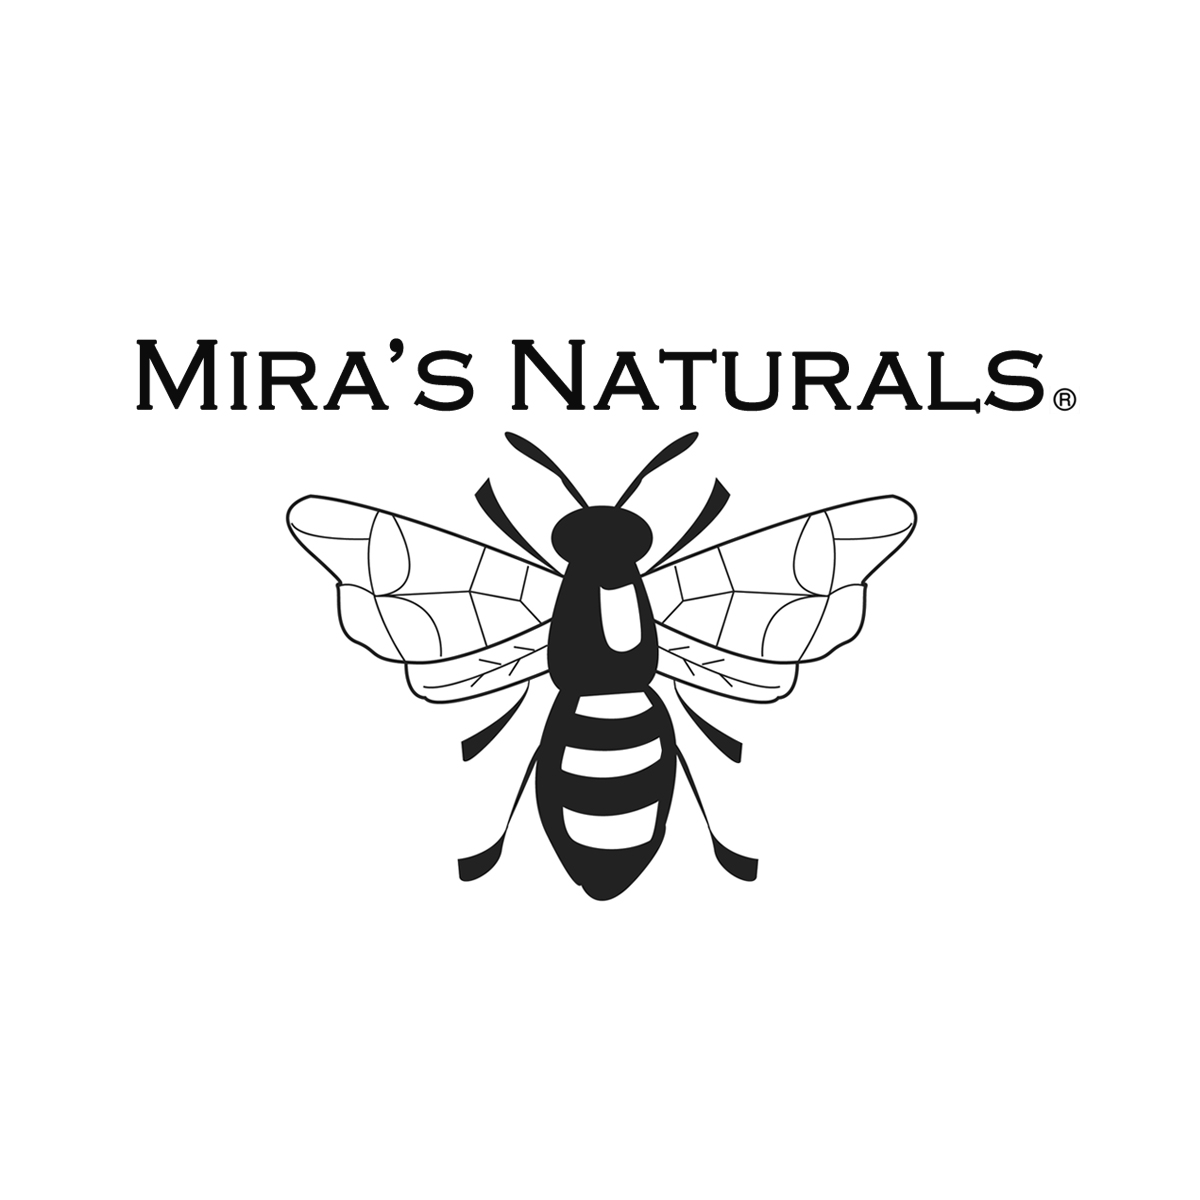 Mira's Naturals - Mira's Naturals was a spark, a wish for a bright future, a vision of combining all the things we are passionate about and driving it towards a useful purpose. Our daughter Mira is diagnosed on the Autism spectrum and we had always been brainstorming ideas on how to create a sustainable business to support her needs in the future. Since her diagnosis we were also constantly seeking healthier and more natural options to use in our household. Then along came beekeeping and all of the wonderful, useful, healthy offshoots of it. My husband, Mike, stepped into beekeeping under the encouragement of our dear friends who own the only working farm in our community of Woodstock, NY. They had once had bees and were wanting to have them back as a fixture on the farm. It was an awakening! As we researched all of the amazing and practical uses for honey and beeswax we began to dabble in the creation of those things and in 2014 ,Mira's Naturals Honey Lip Balm was born. We haven't stopped growing and creating since!With constant encouragement, positive feedback and customer satisfaction we continue our search for other products to make and share with our family and community.Bee Natural, Bee Yourself,Mike, Meghann, Mira & Max ReimondoVisit us at www.mirasnaturals.com